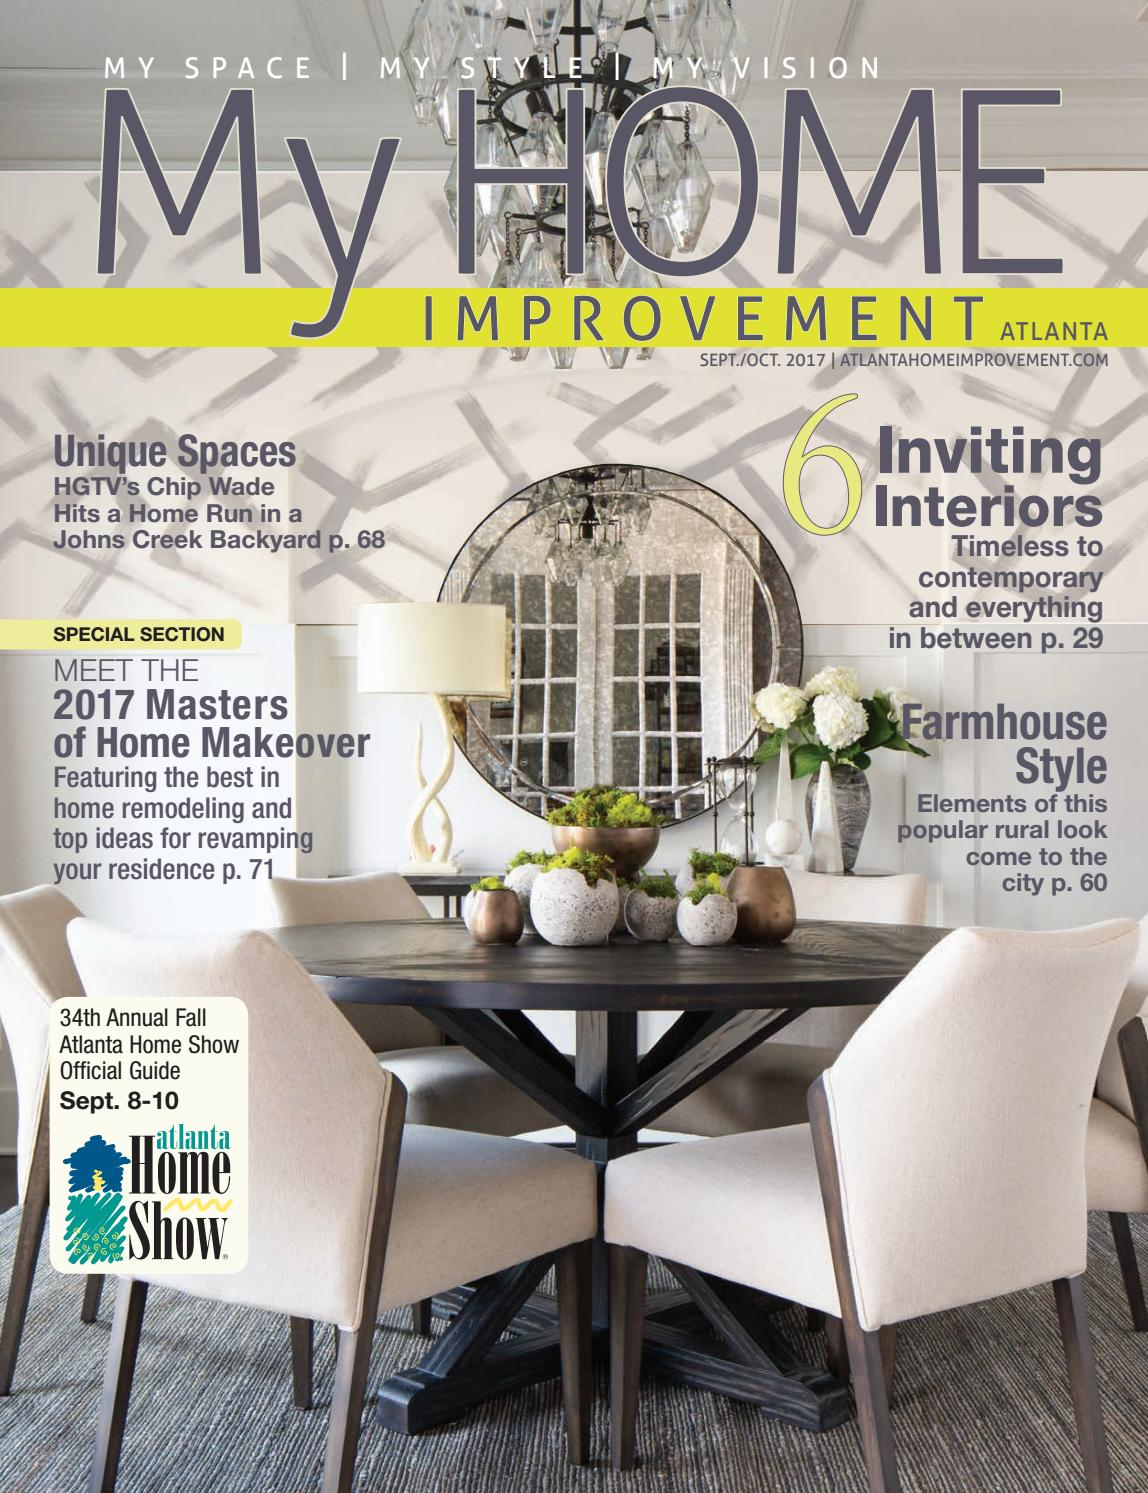 Major Home Remodel Atlanta Home Remodeling Cost Verses Value Glazer Construction My Home Improvement 0917 1017 By My Home Improvement Magazine - Issuu